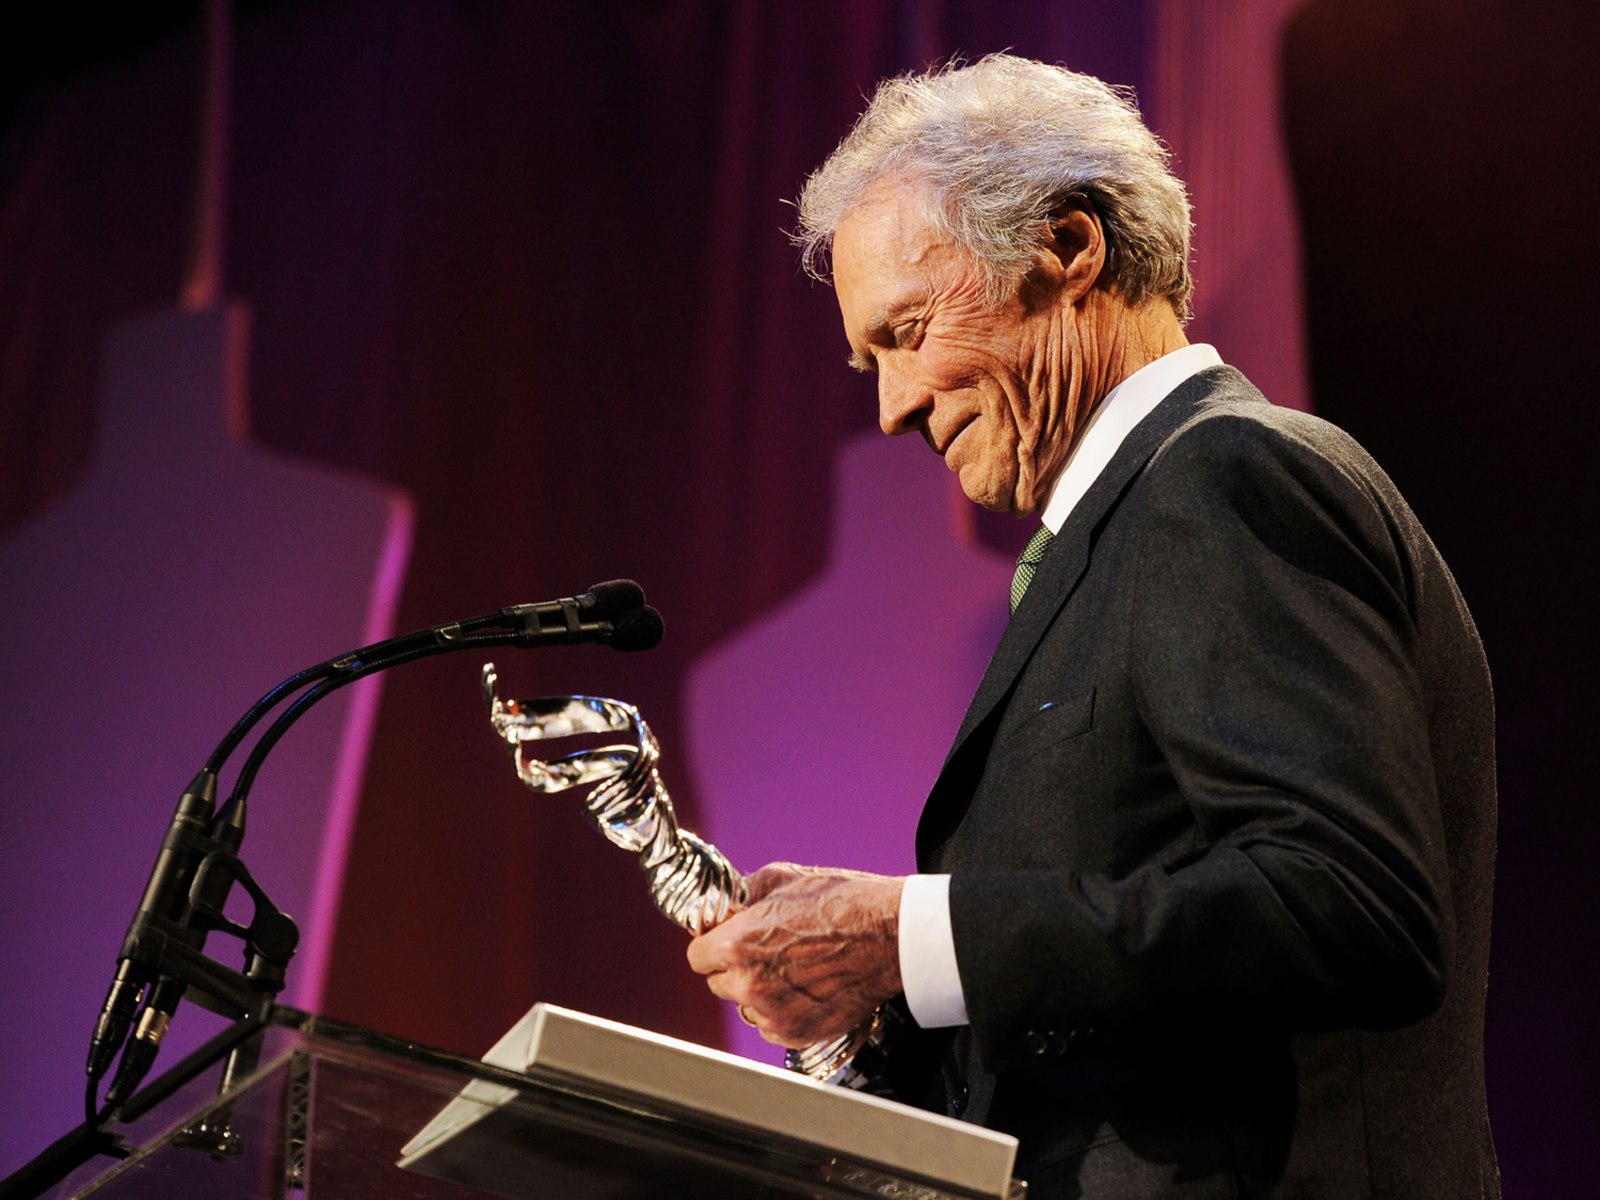 Clint Eastwood's wife has filed for divorce - TODAY.com